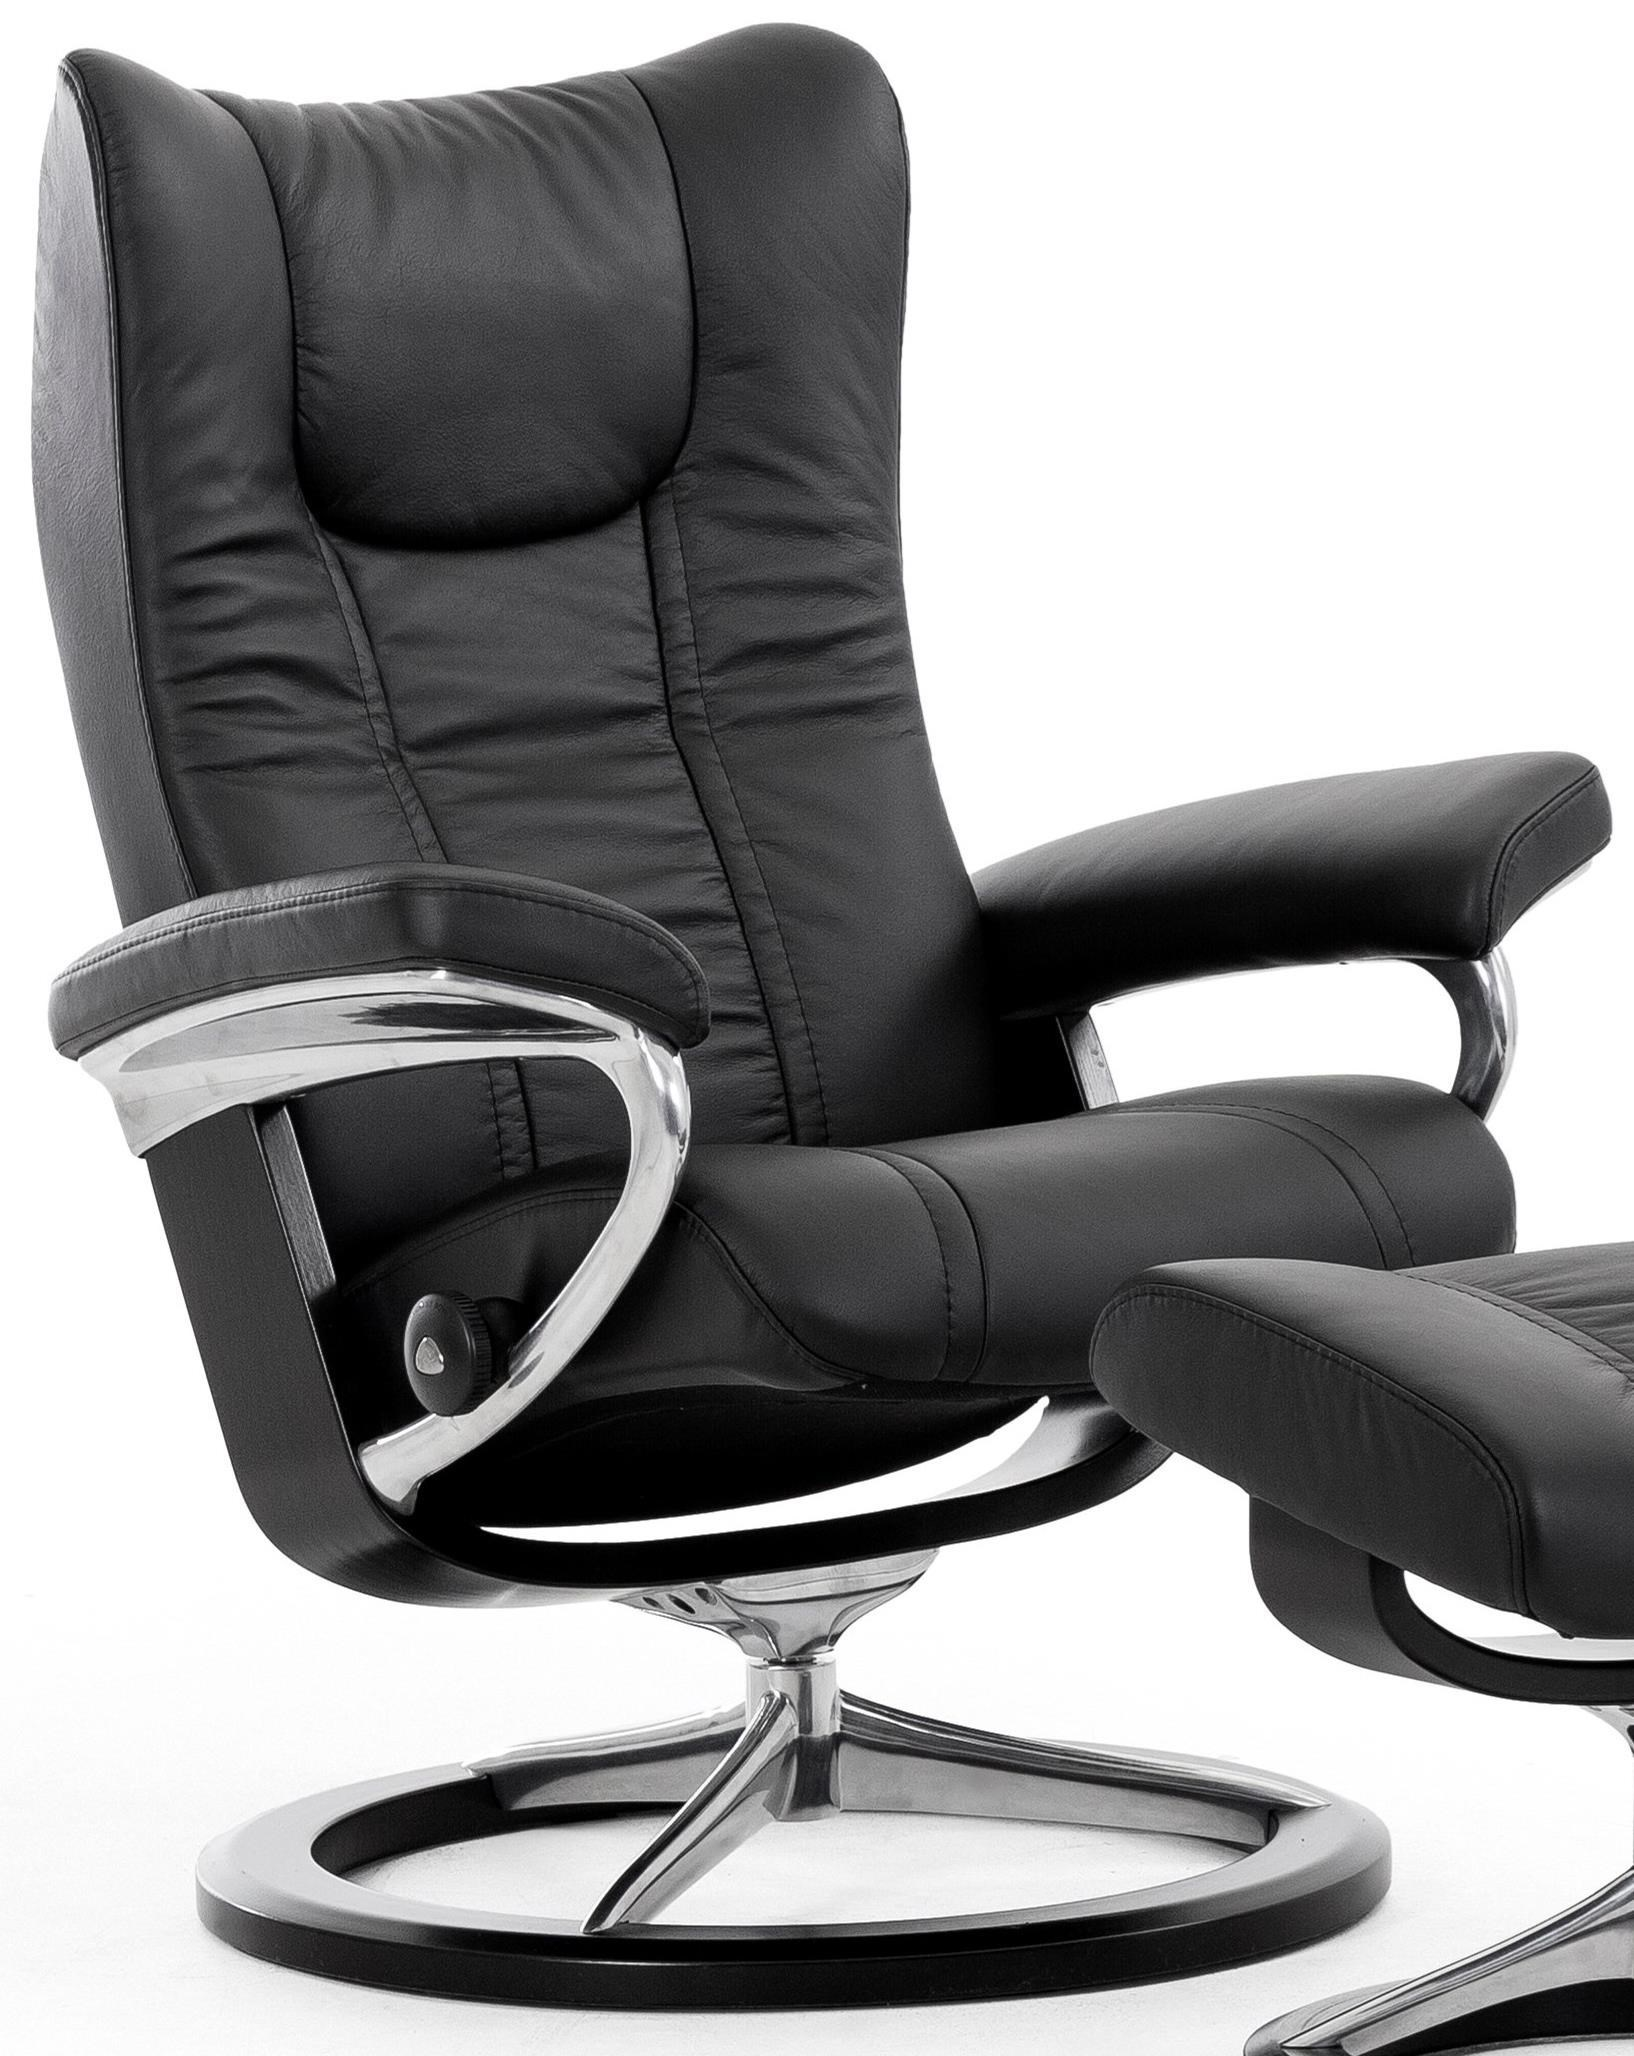 Stresless Wing Small Reclining Chair With Signature Base By Stressless At Hudson S Furniture